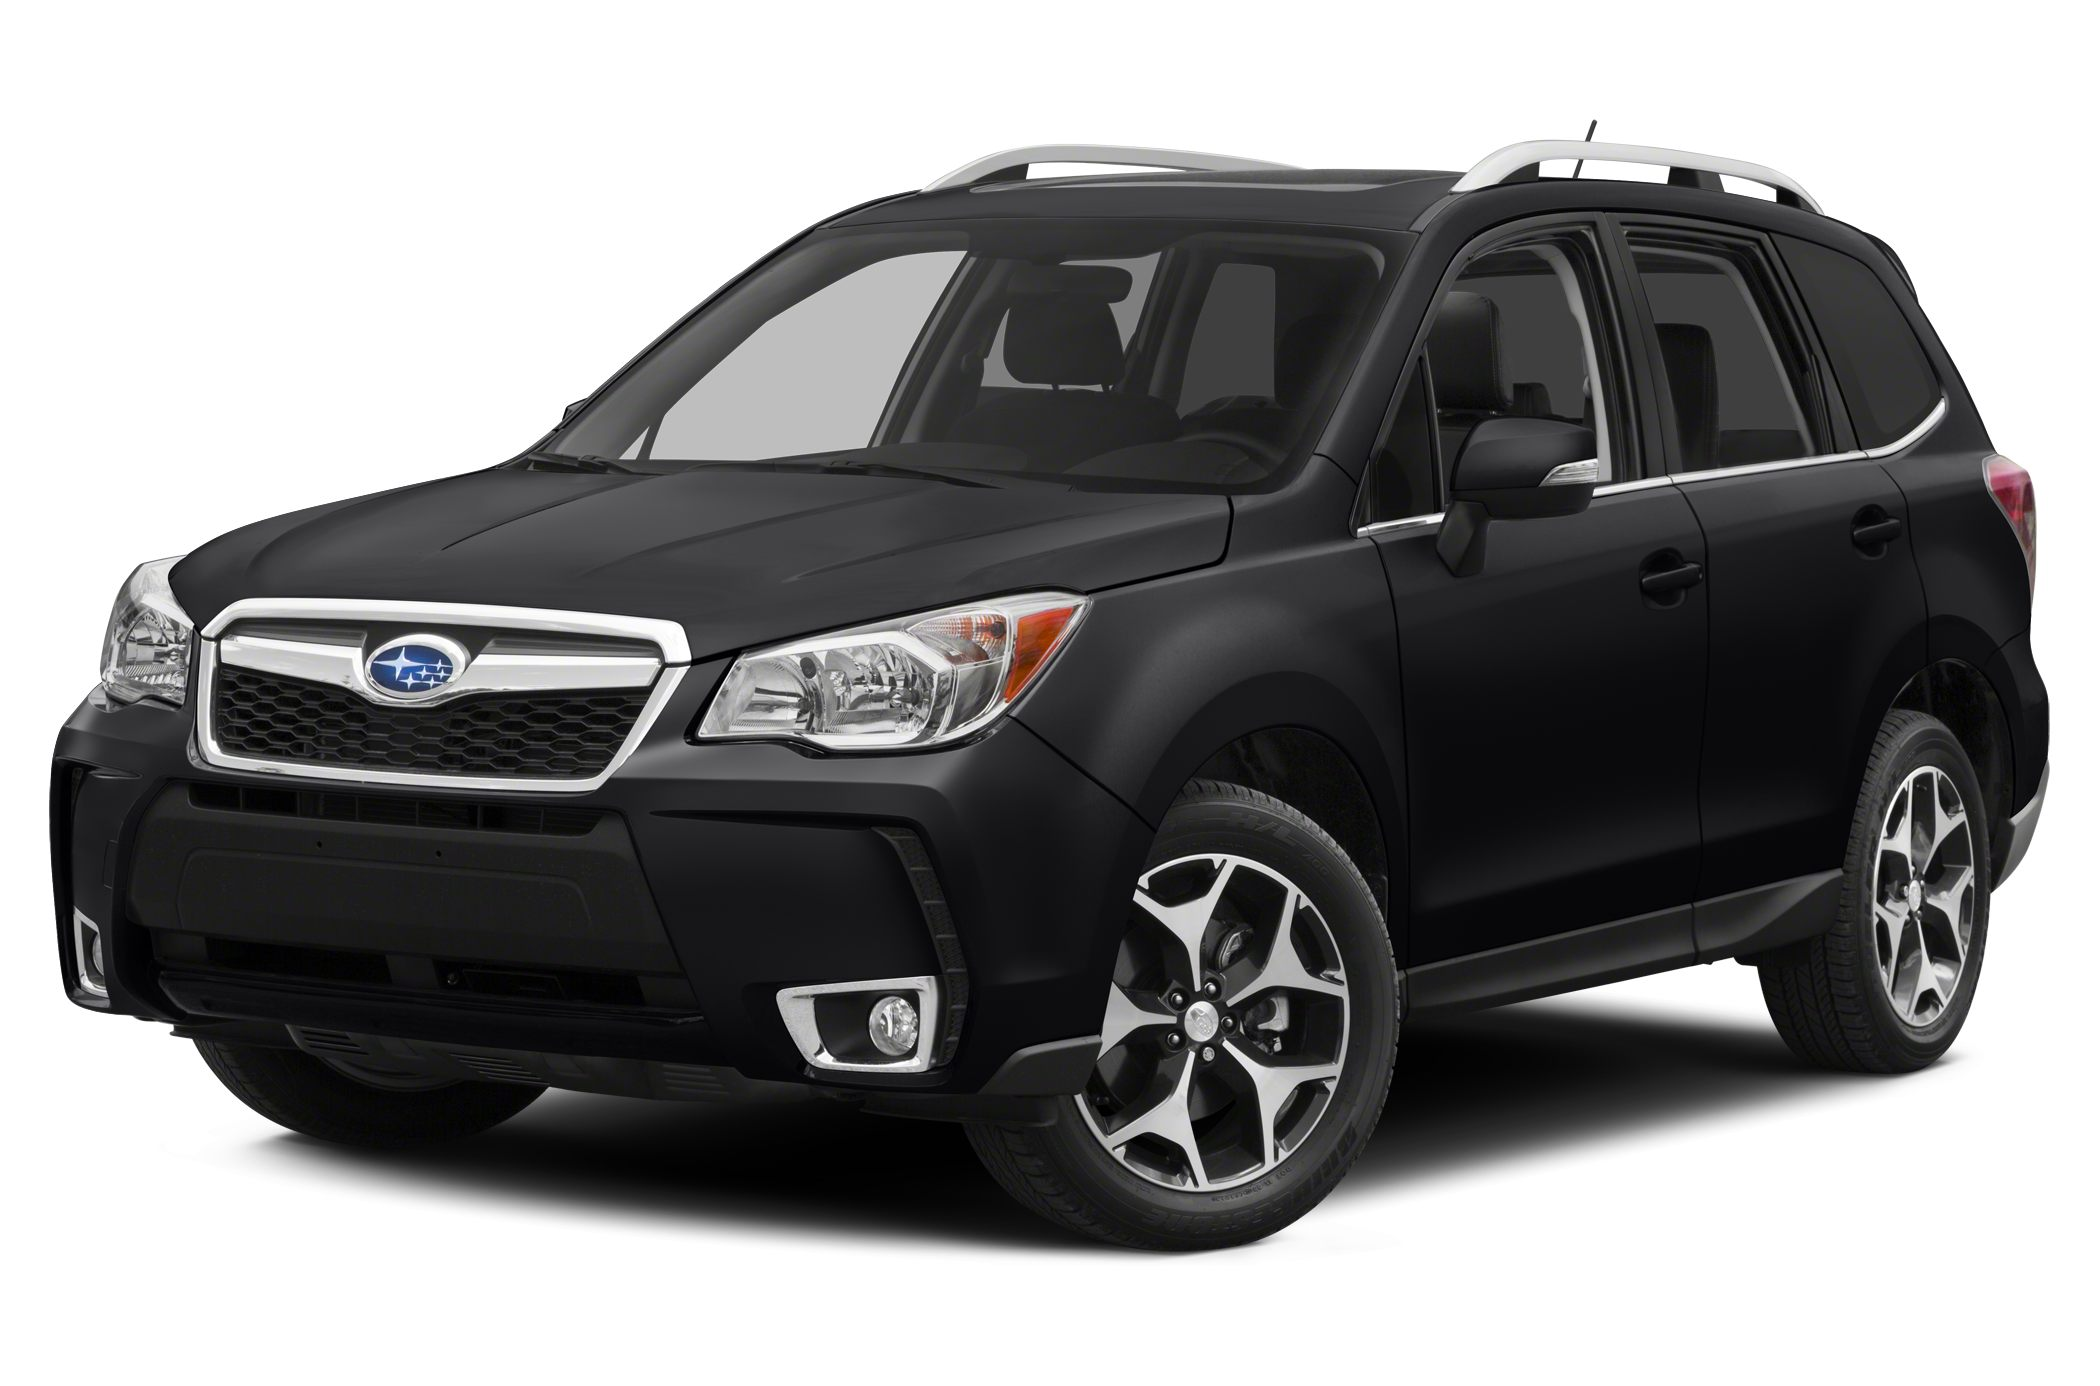 2015 Subaru Forester 2.0XT Touring SUV for sale in Reno for $36,750 with 5 miles.